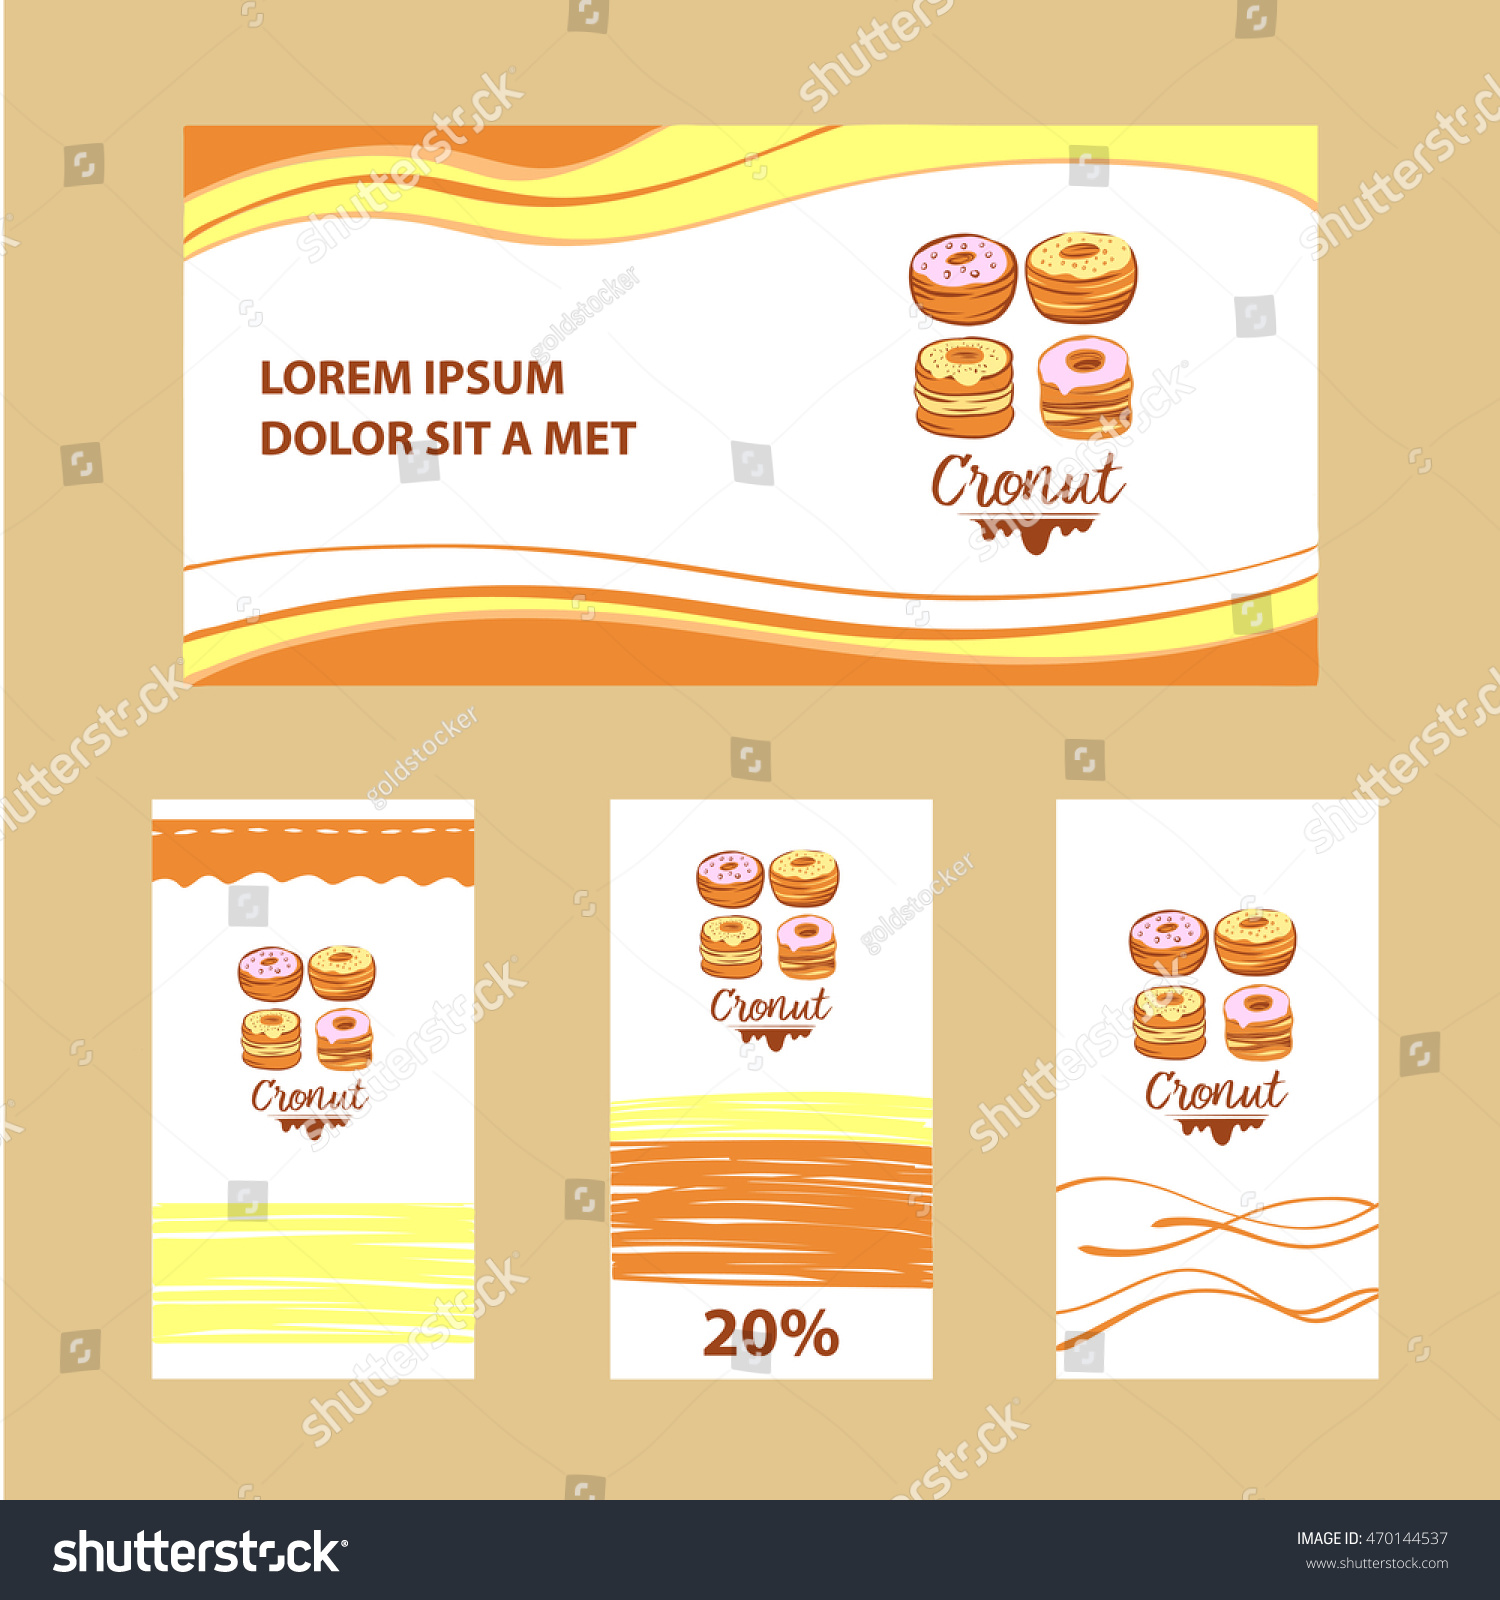 Illustration Corporate Identity Banner Business Card Stock Vector